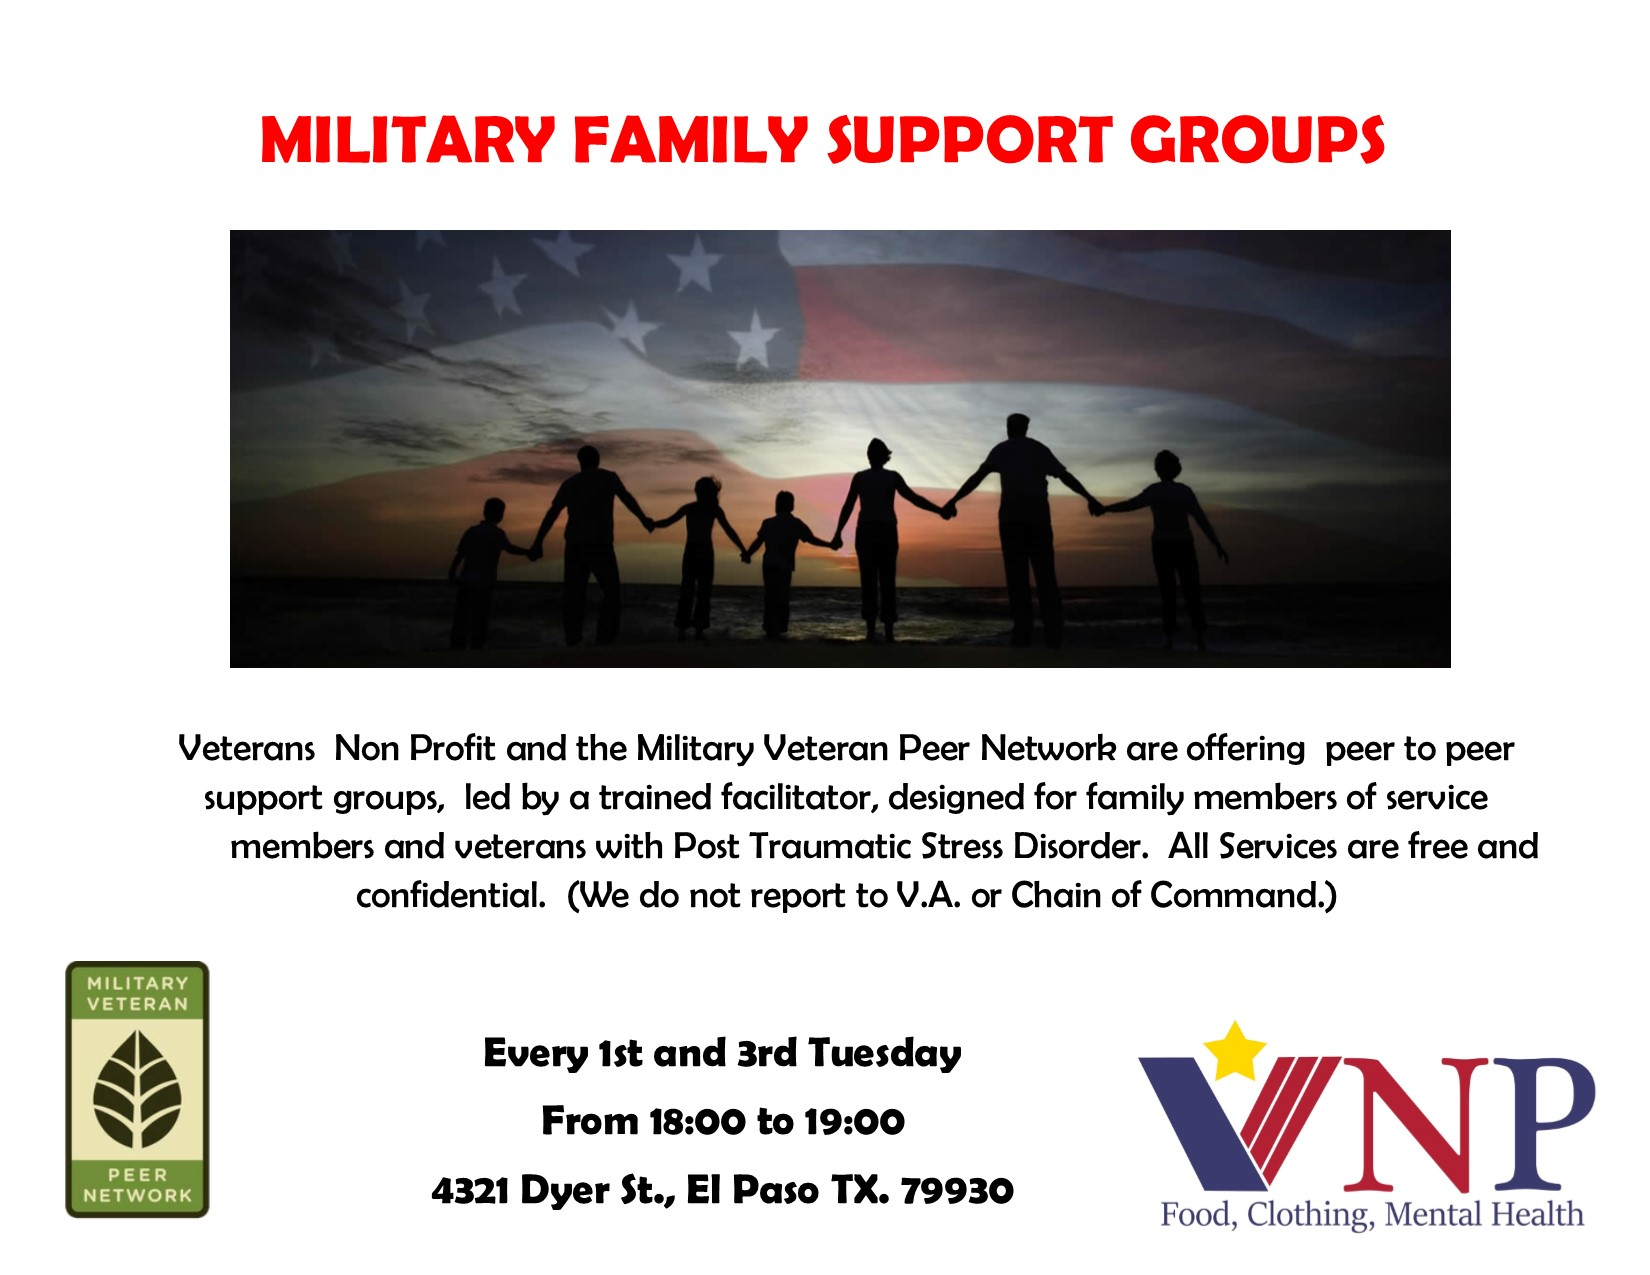 VNP Family support group Flyer 1 Aug19JPEG.jpg